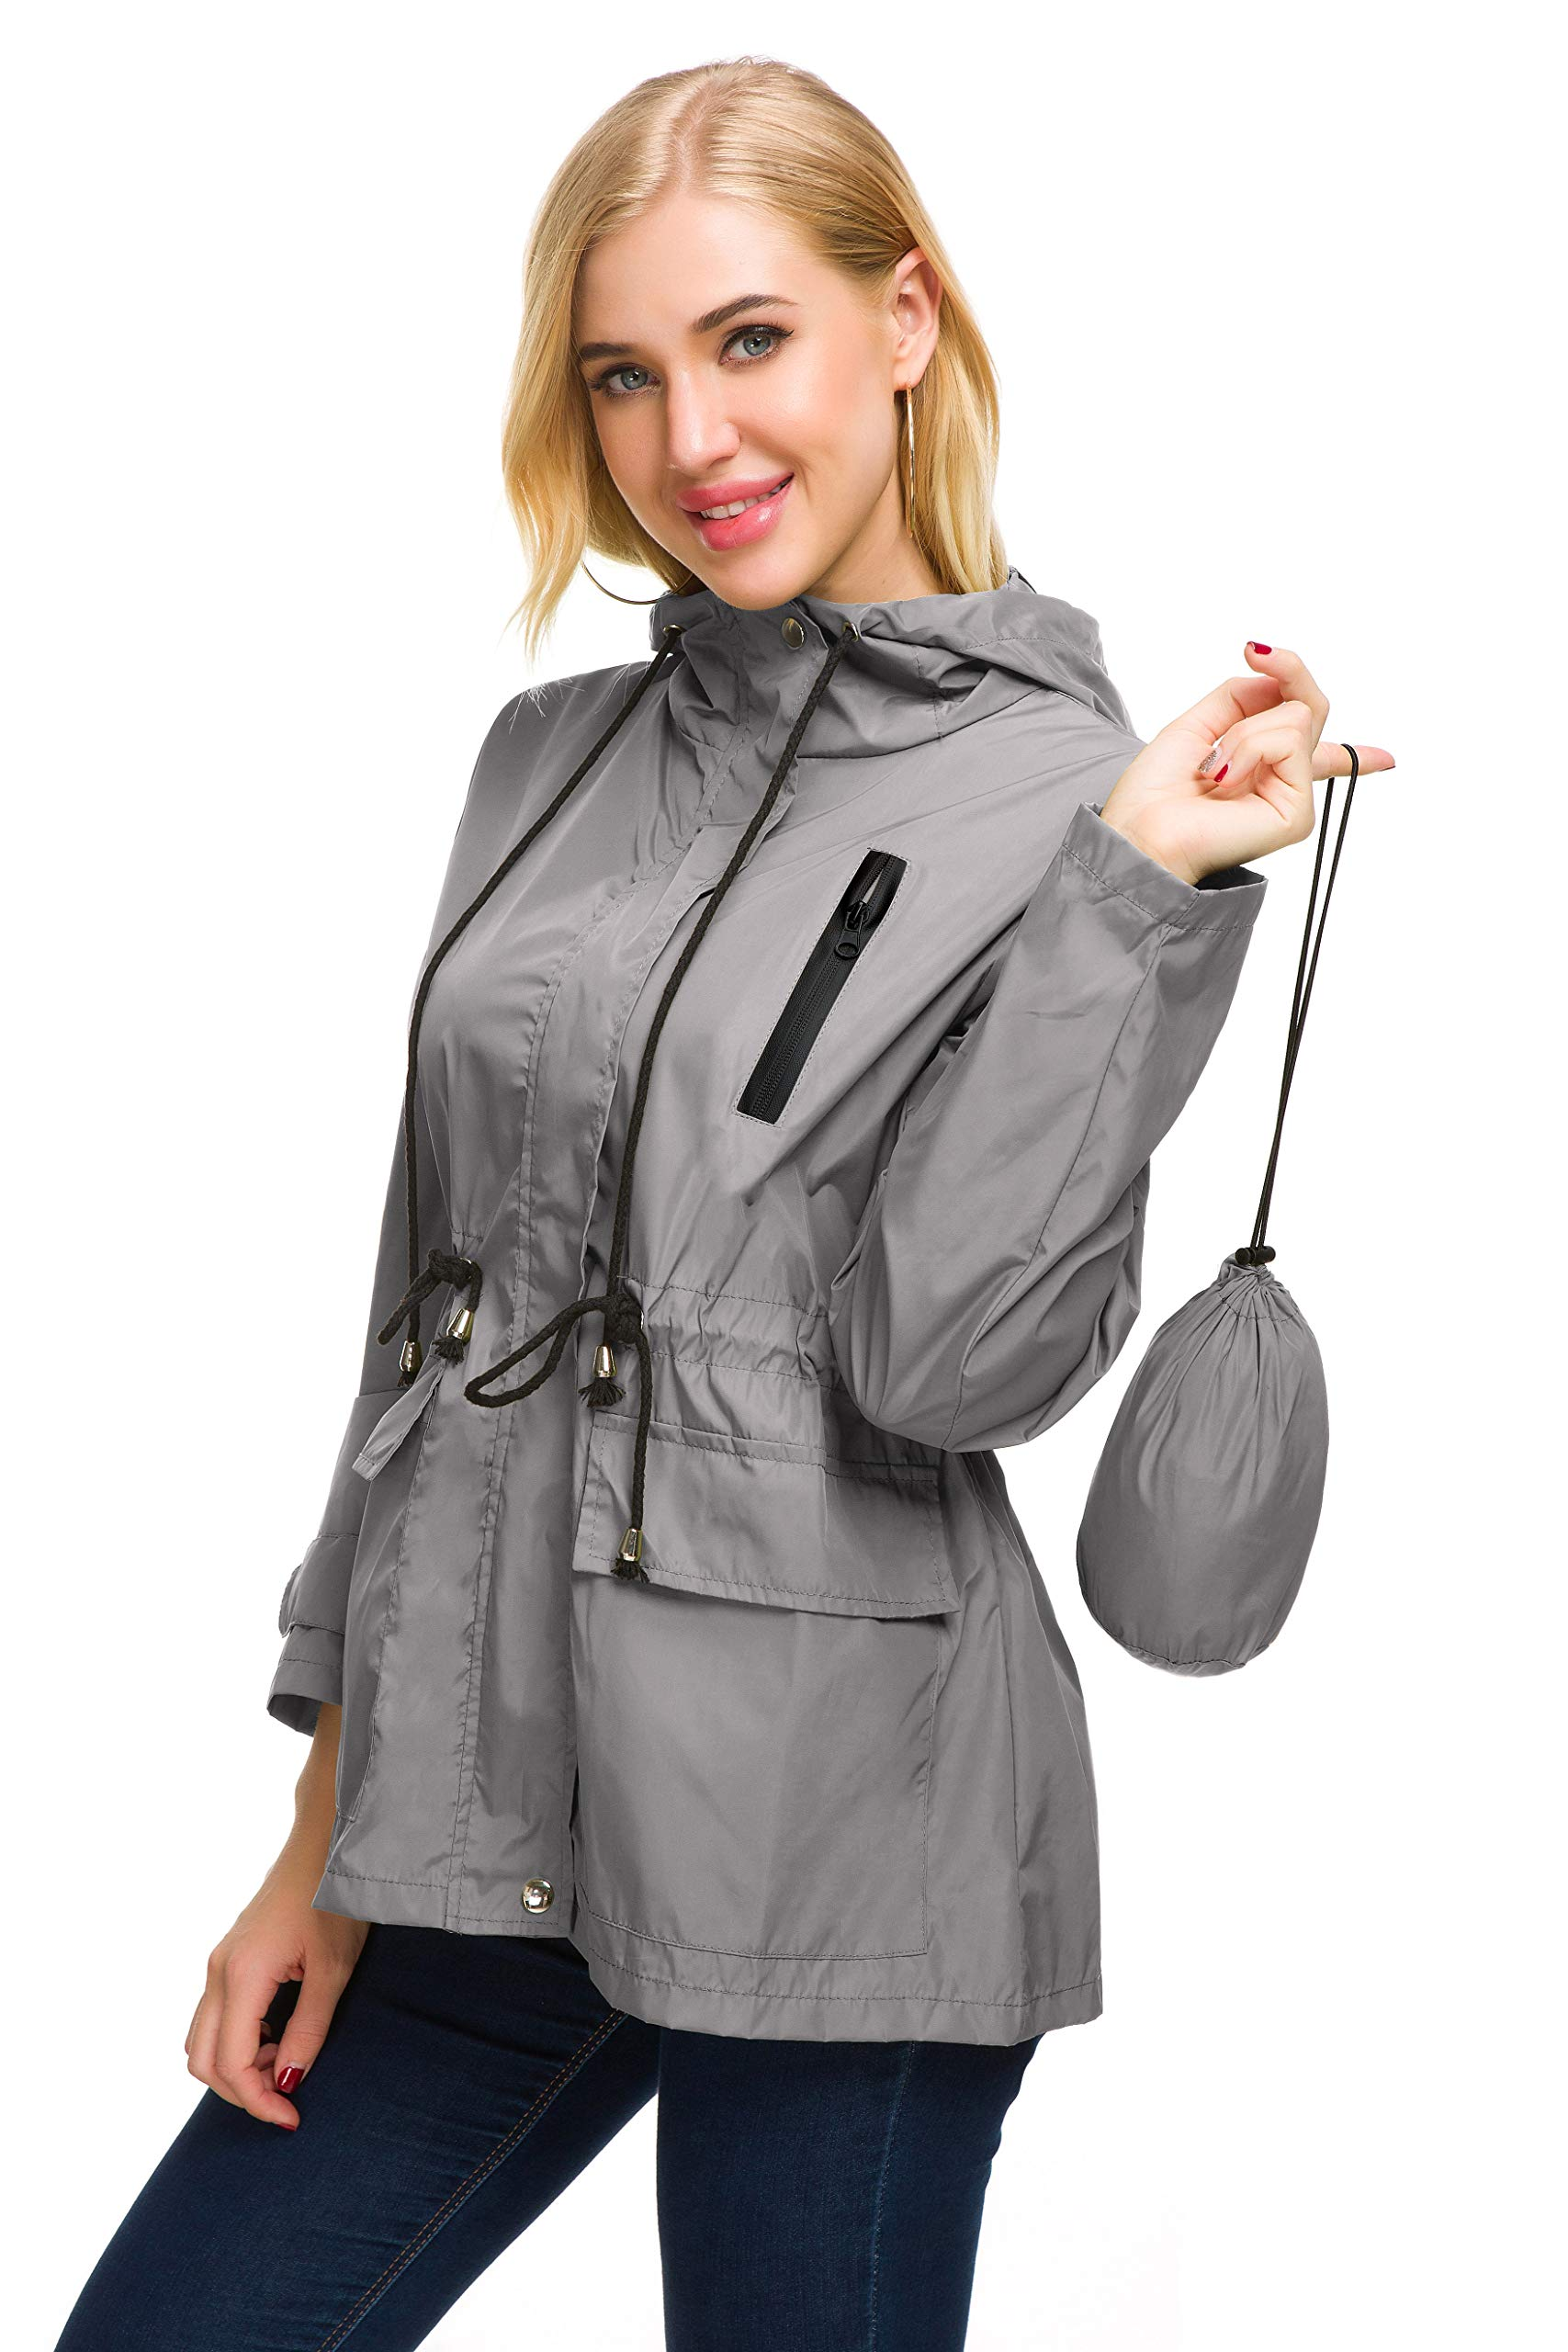 purchase genuine get new new arrival Grey Rain Jacket Women Fitted Raincoat Warm Rain Coat Outdoor Active  Windbreaker(Gray,S)